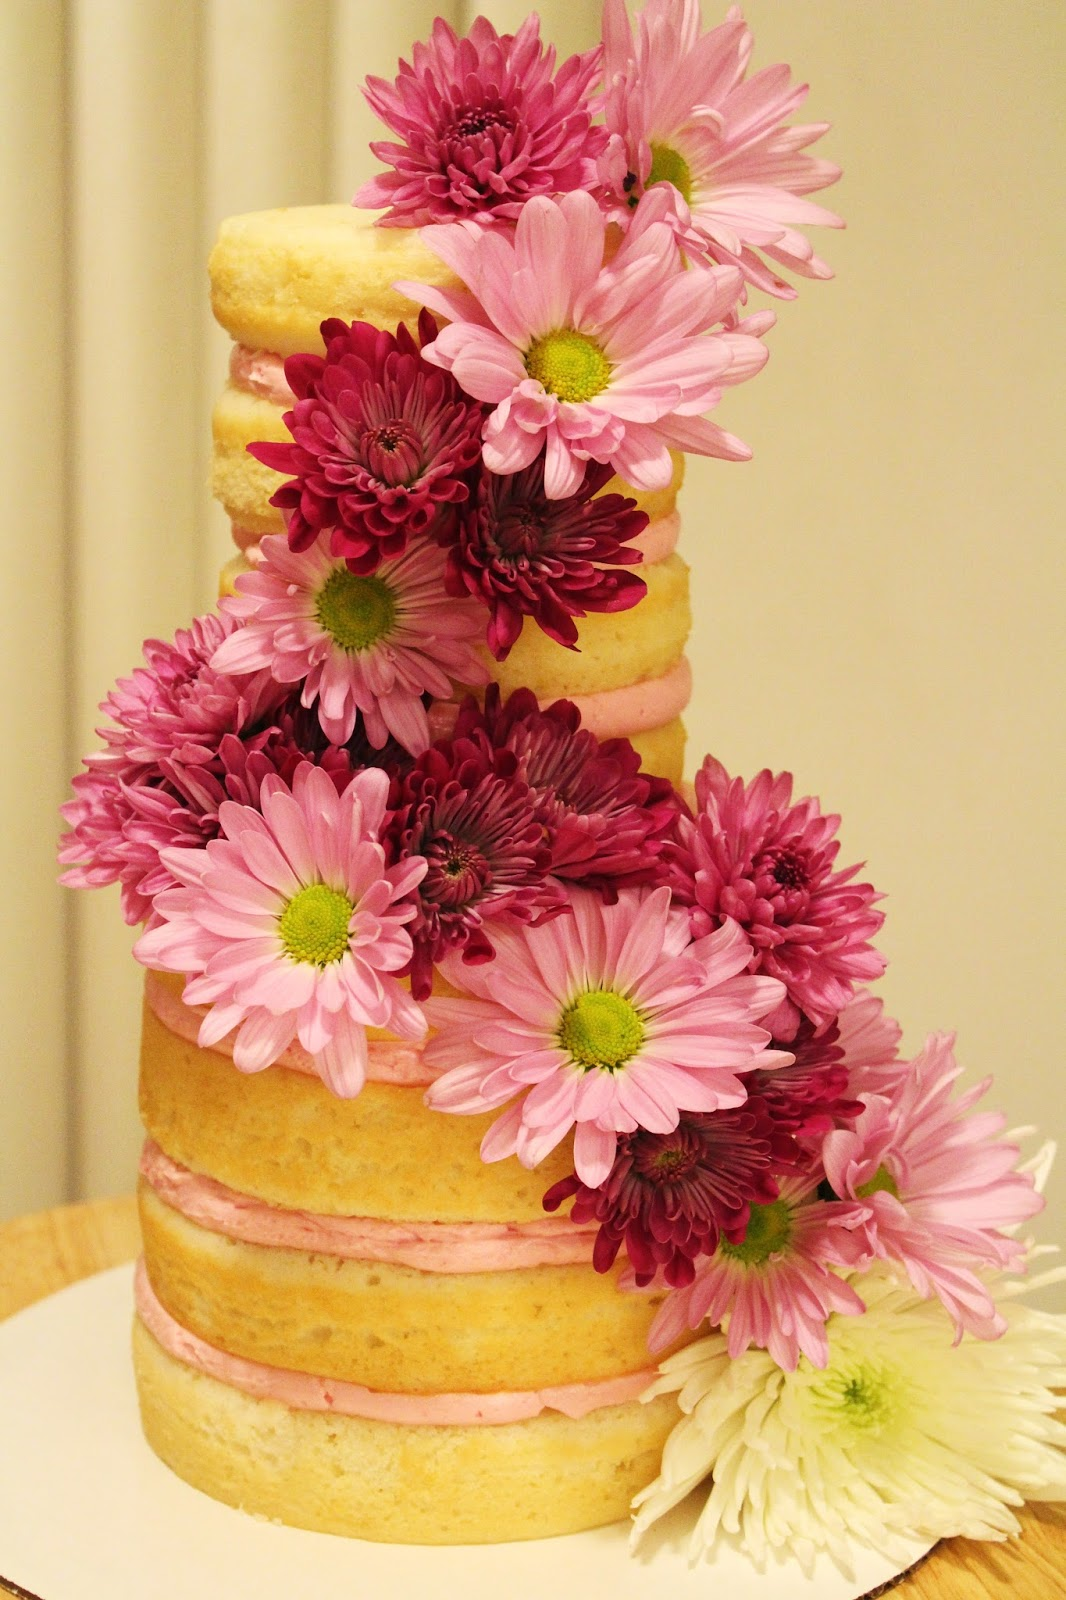 Blog As You Bake Naked Cake With Fresh Blooms